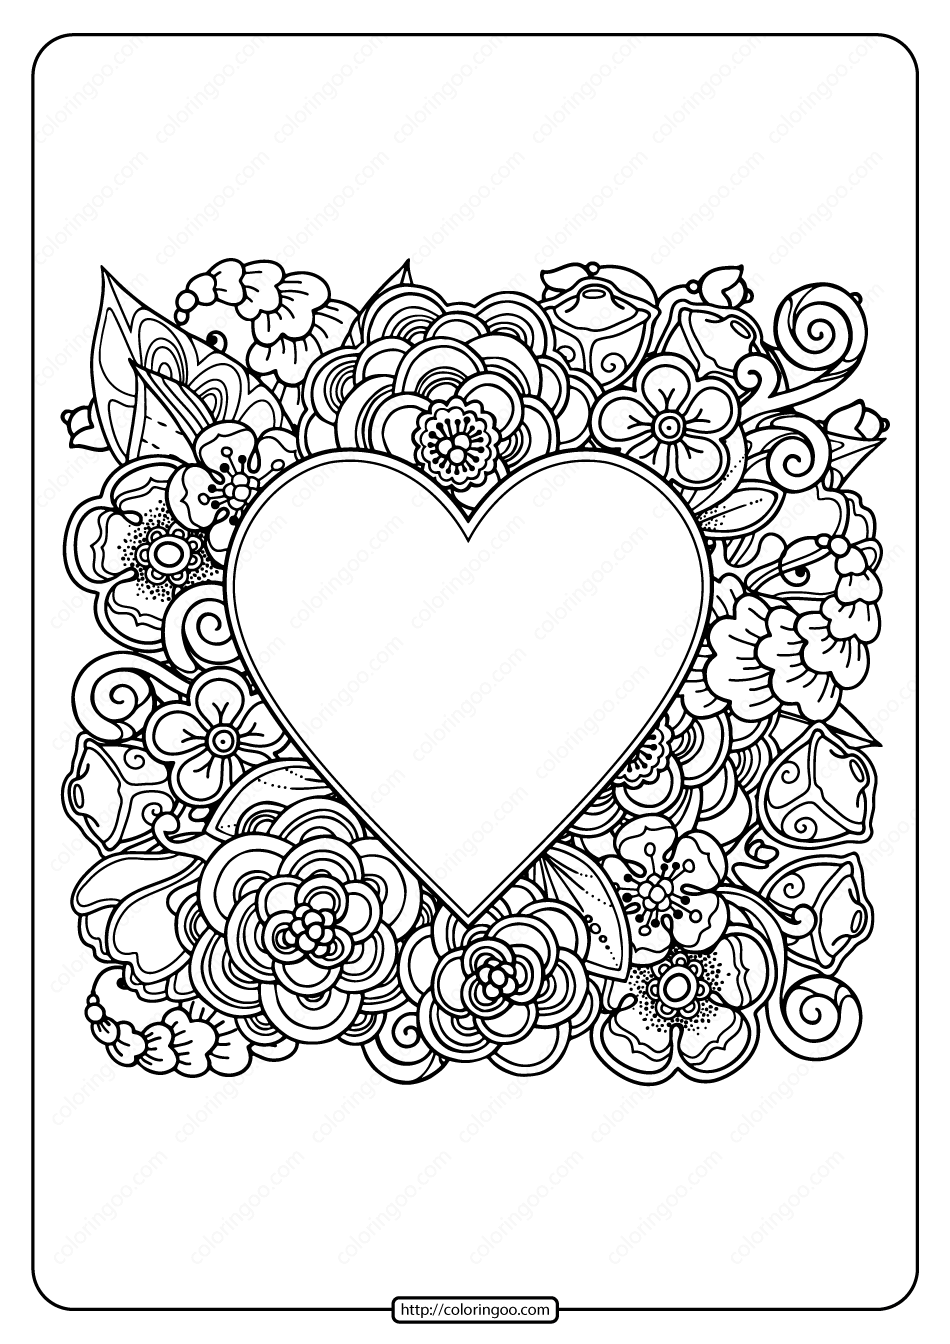 hearts printable coloring pages hearts coloring pages getcoloringpagescom pages coloring printable hearts